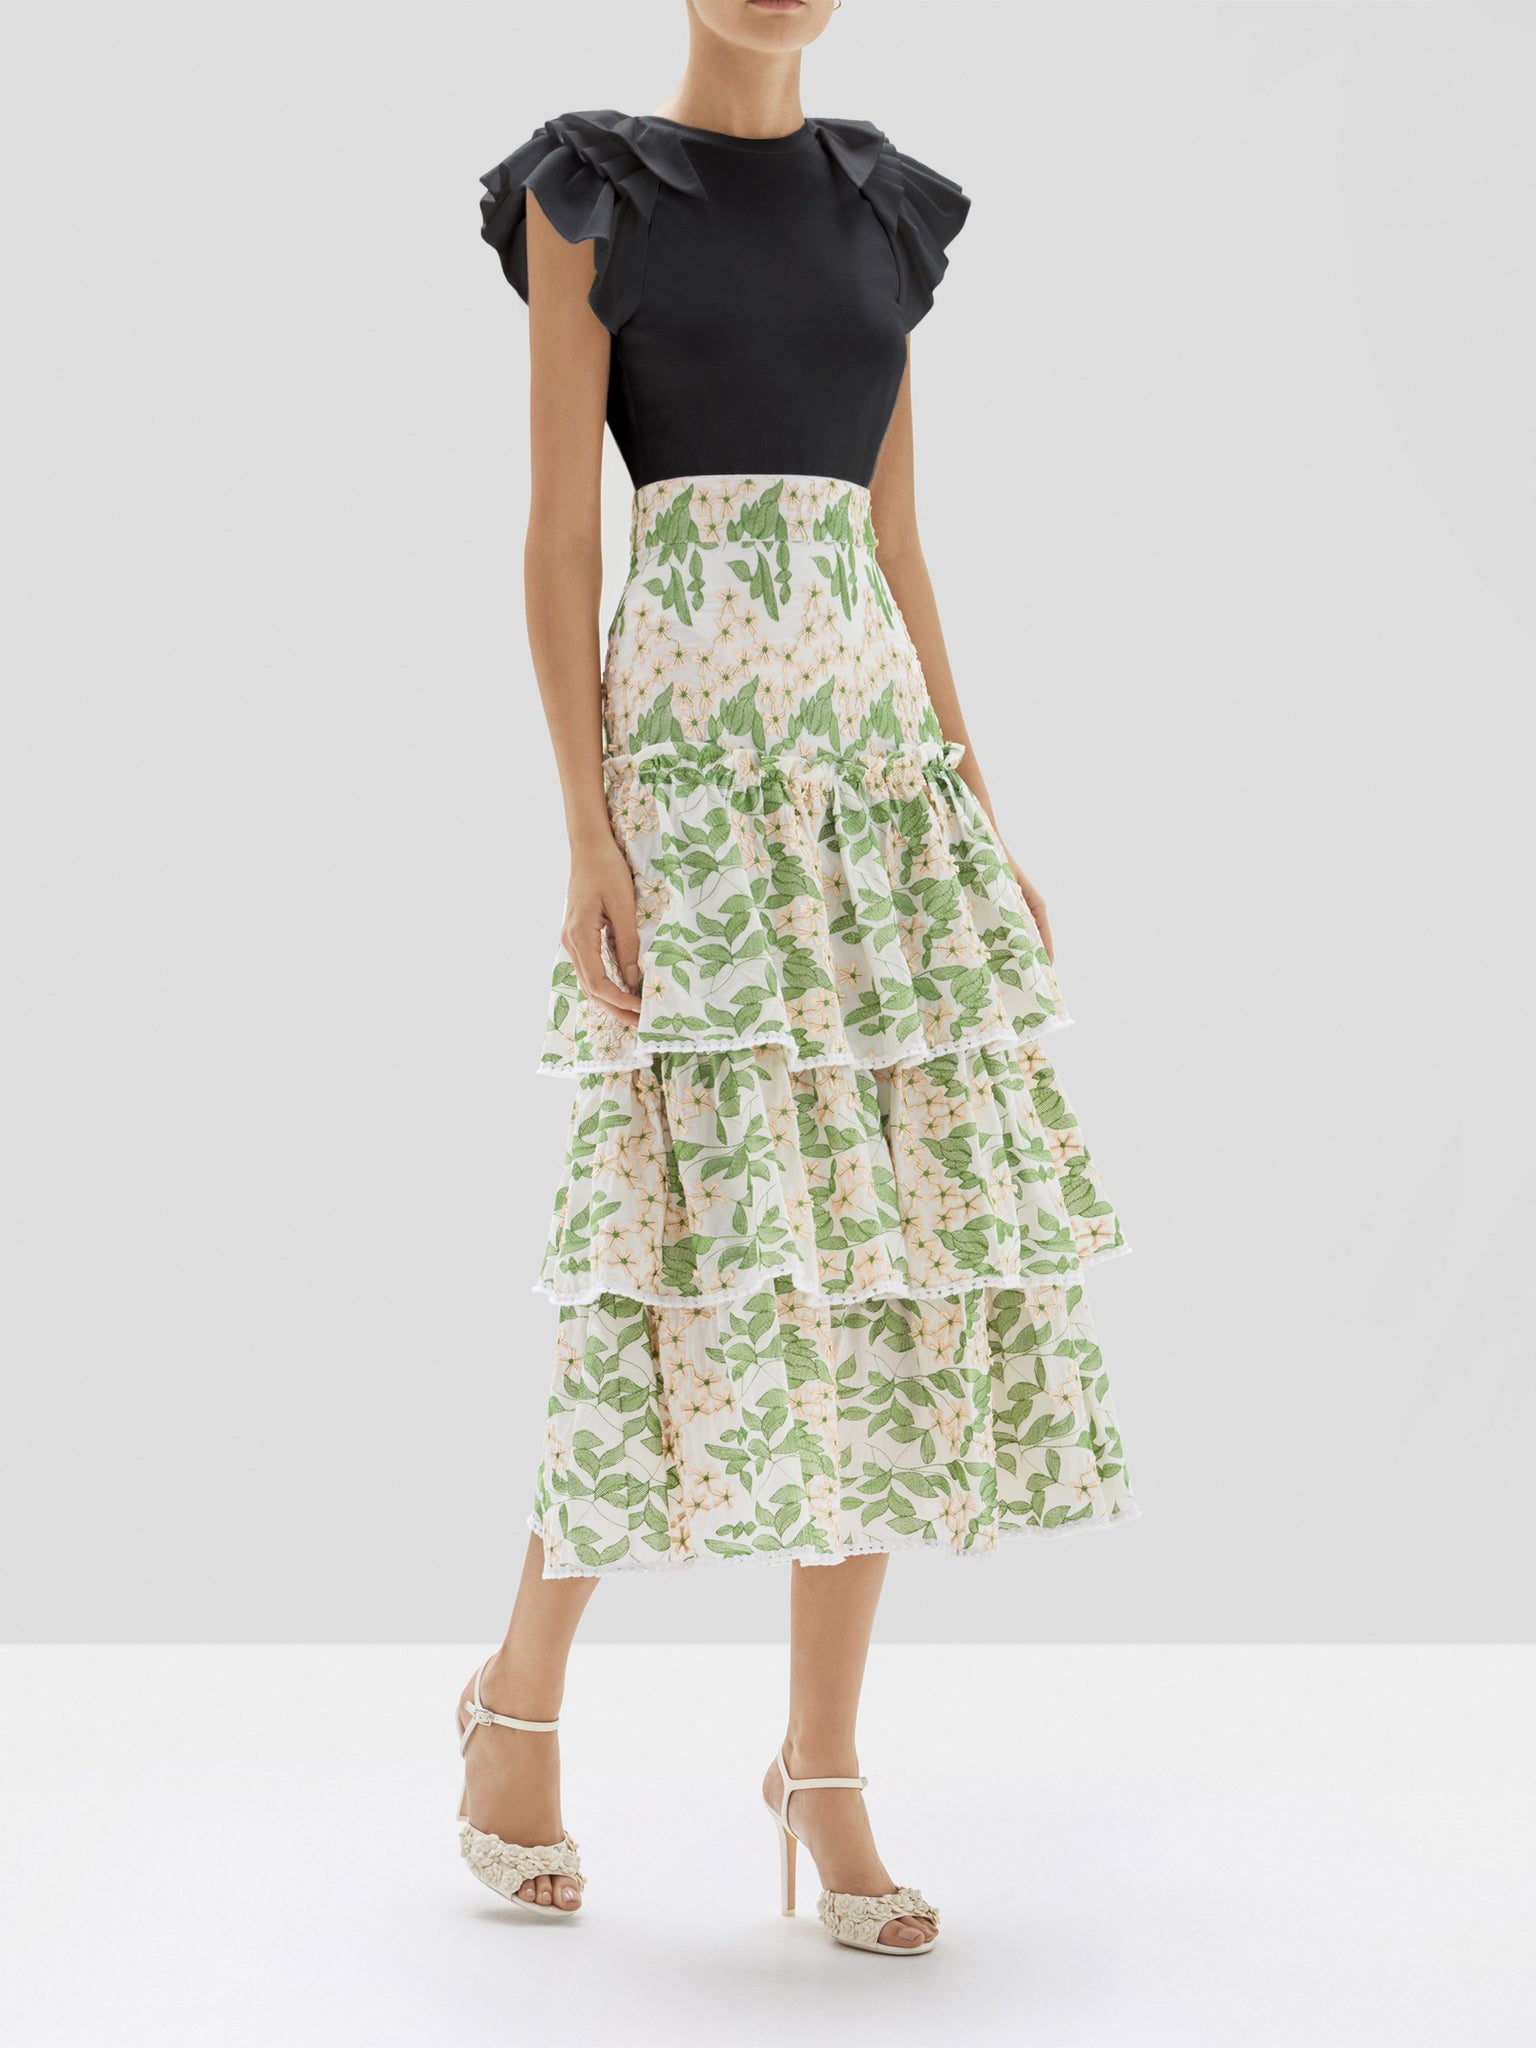 Alexis Cassis Top in Black and Aditya Skirt in Green Embroidery from the Pre Spring 2020 Collection